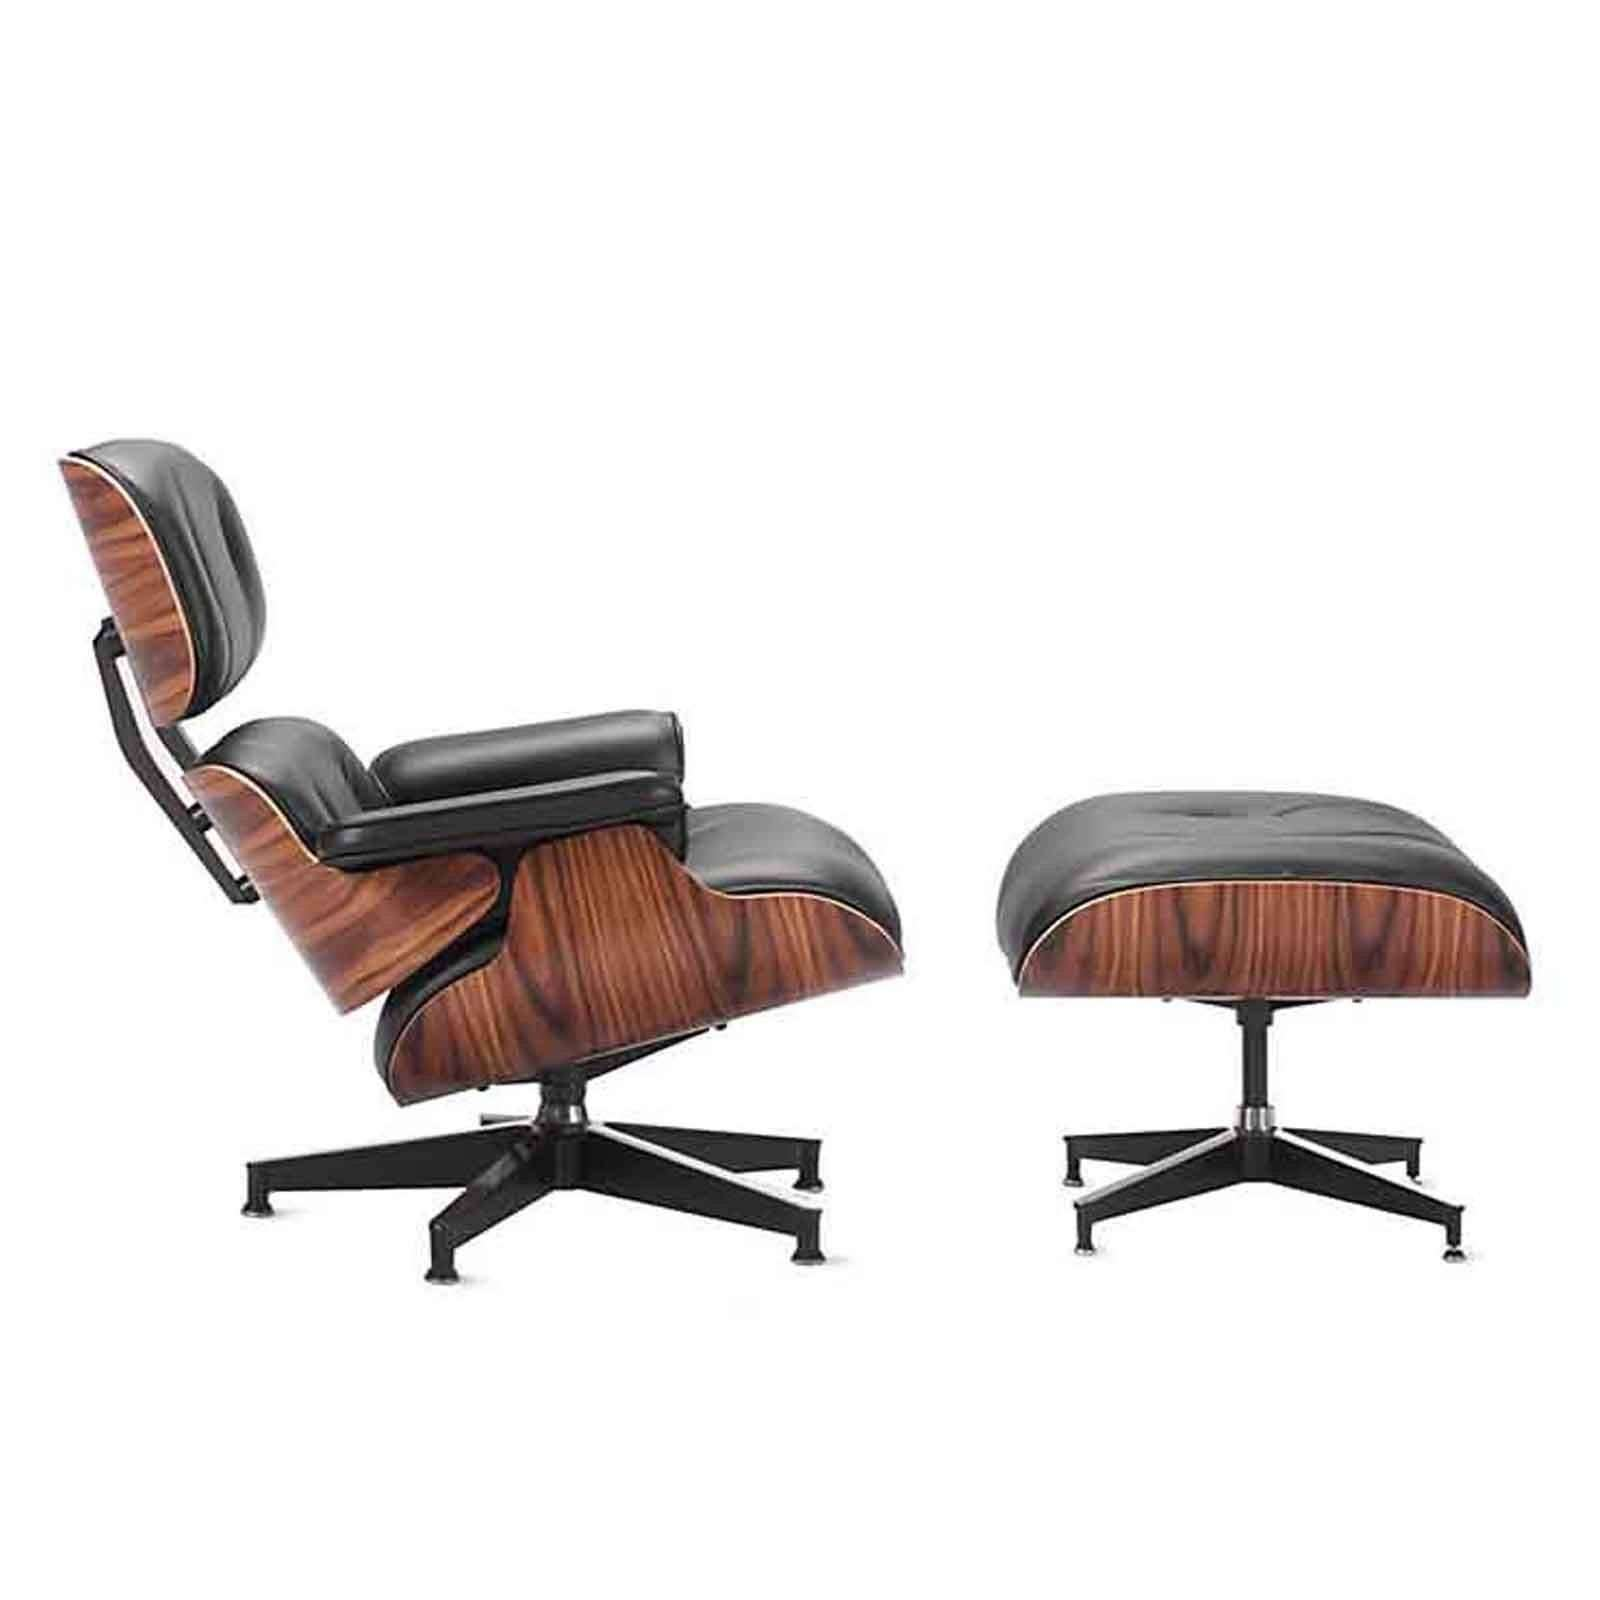 Eames Lounge Chair Ottoman Reproduction